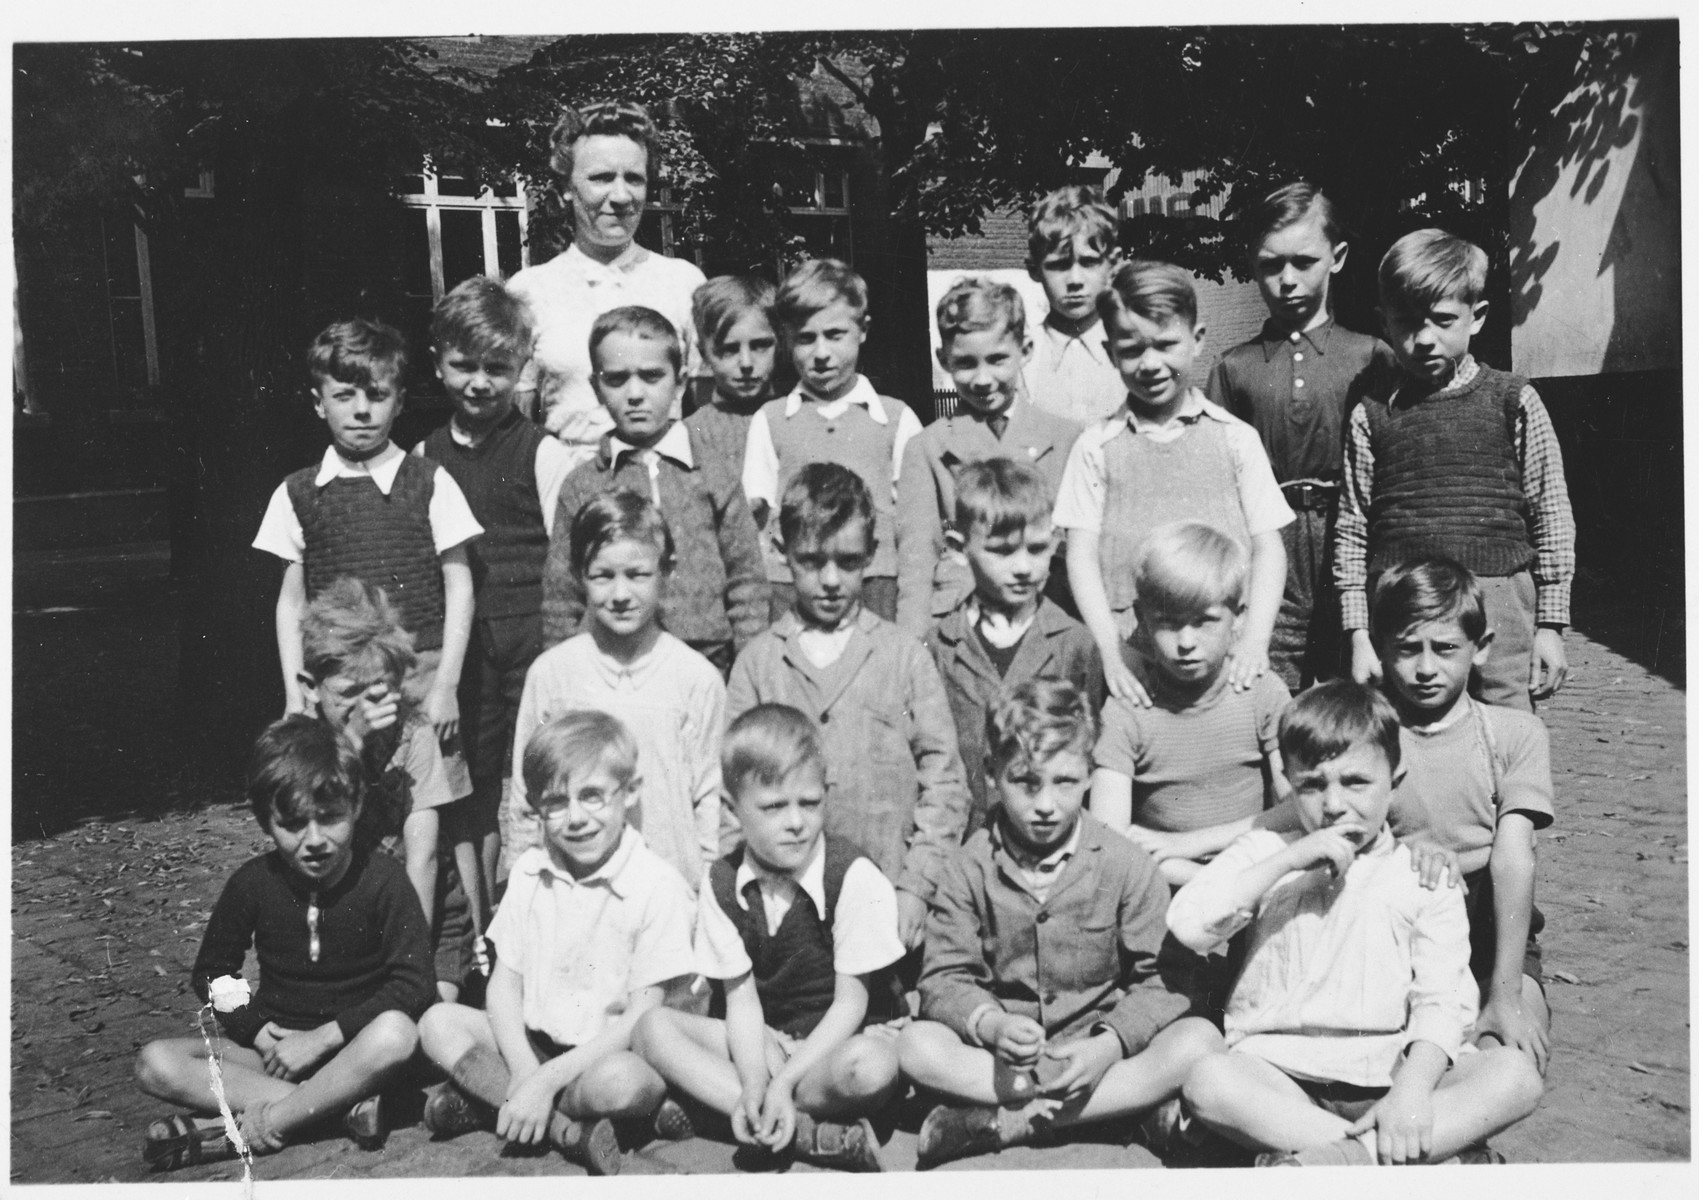 Group portrait of students at an elementary school in Brussels attended by both Jewish and non-Jewish children.